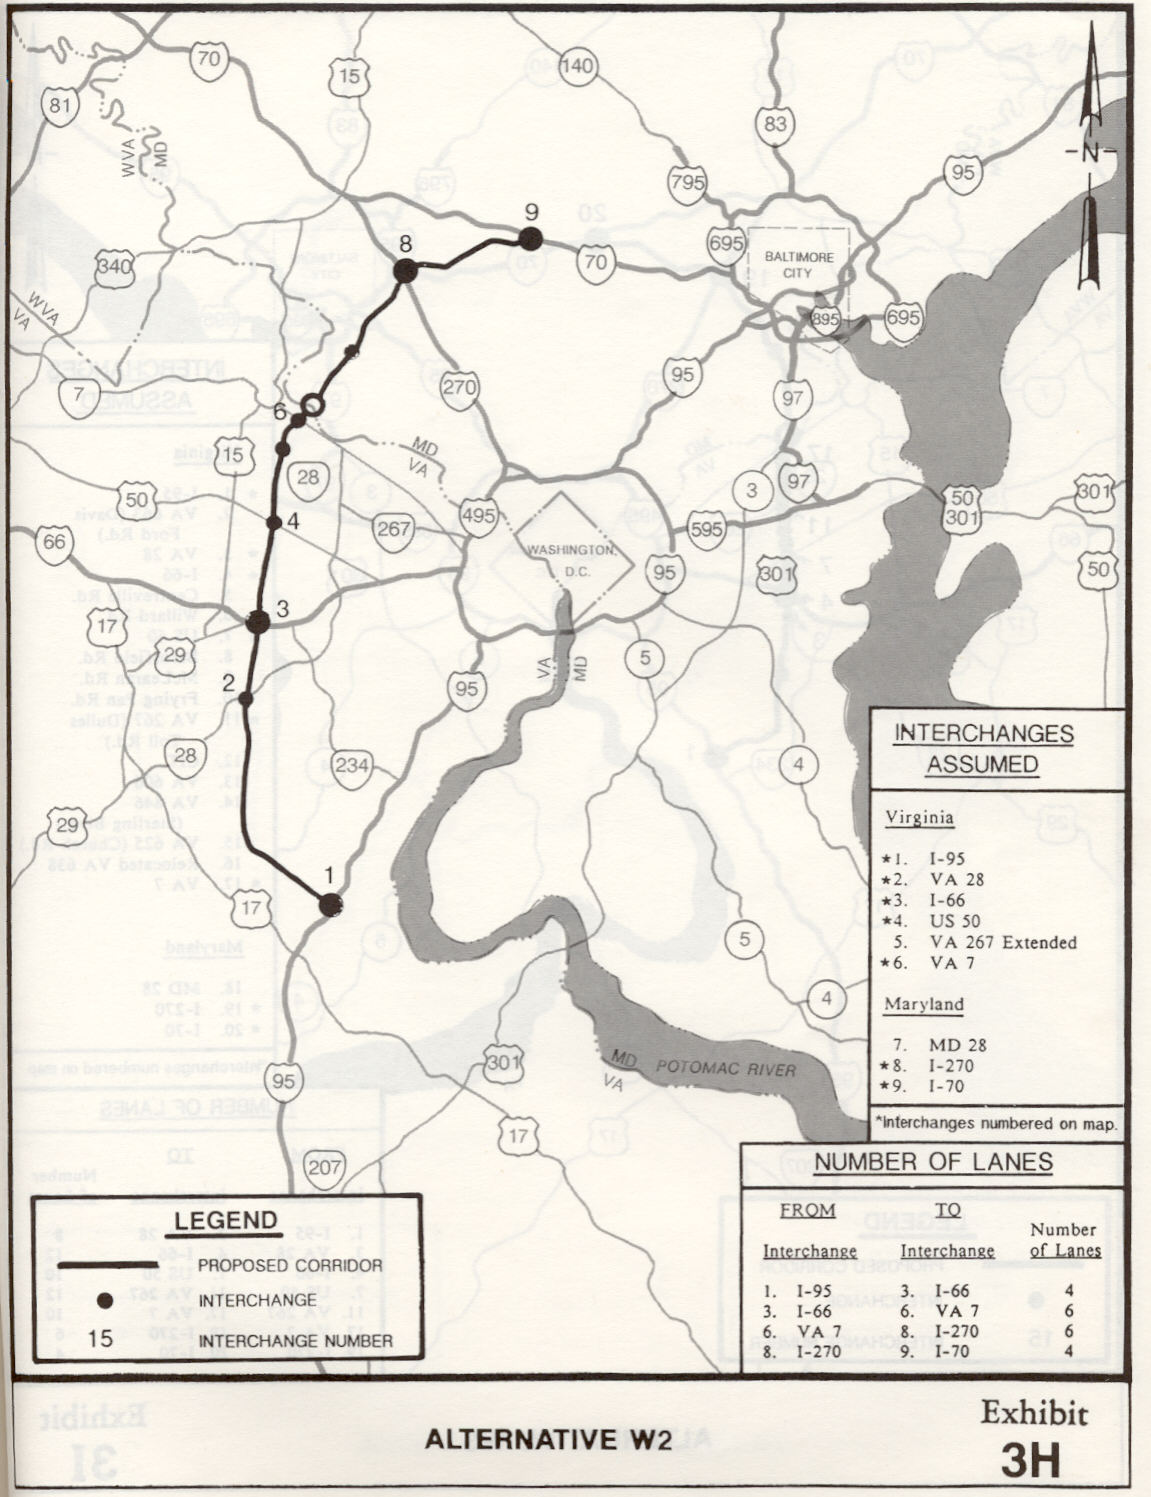 Washington Byp Studies on us route 95 map, route 301 florida map, route 301 maryland map, interstate 301 map, highway 301 florida map, delaware 301 bypass map,